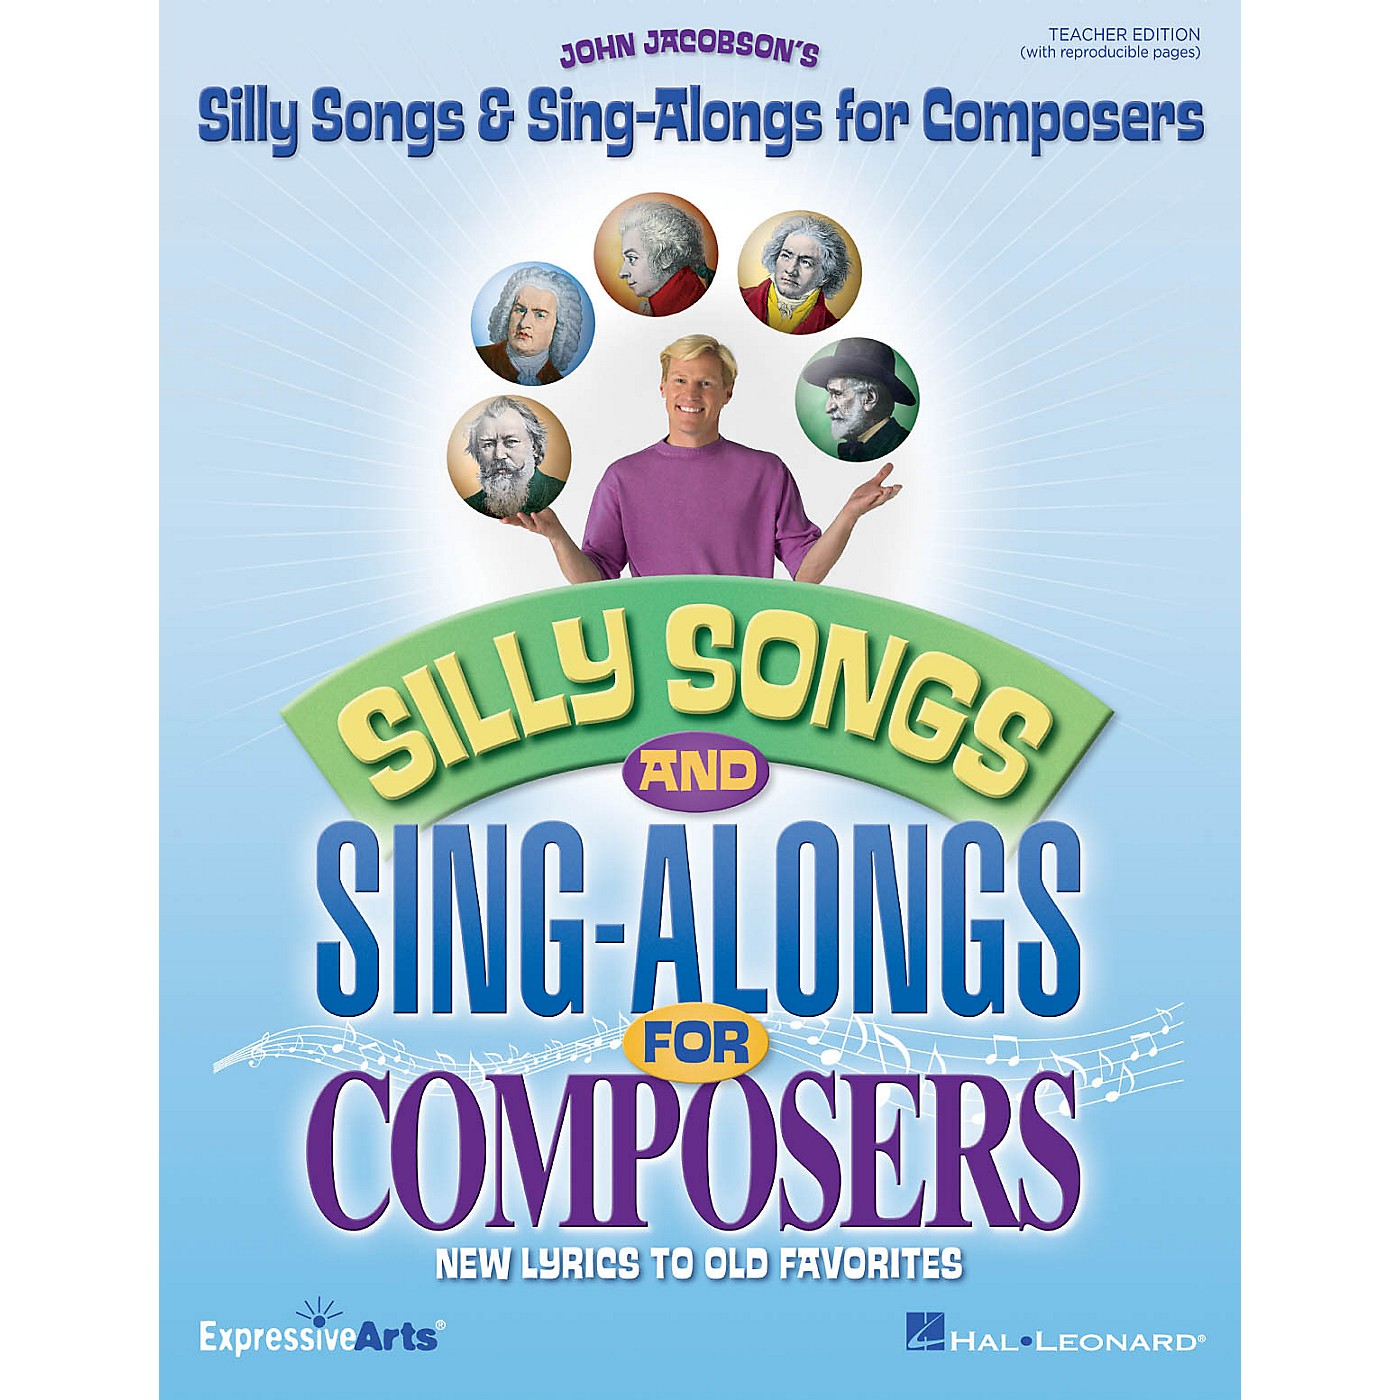 Hal Leonard Silly Songs & Sing-Alongs for Composers (New Lyrics to Old Favorites) CLASSRM KIT by John Jacobson thumbnail